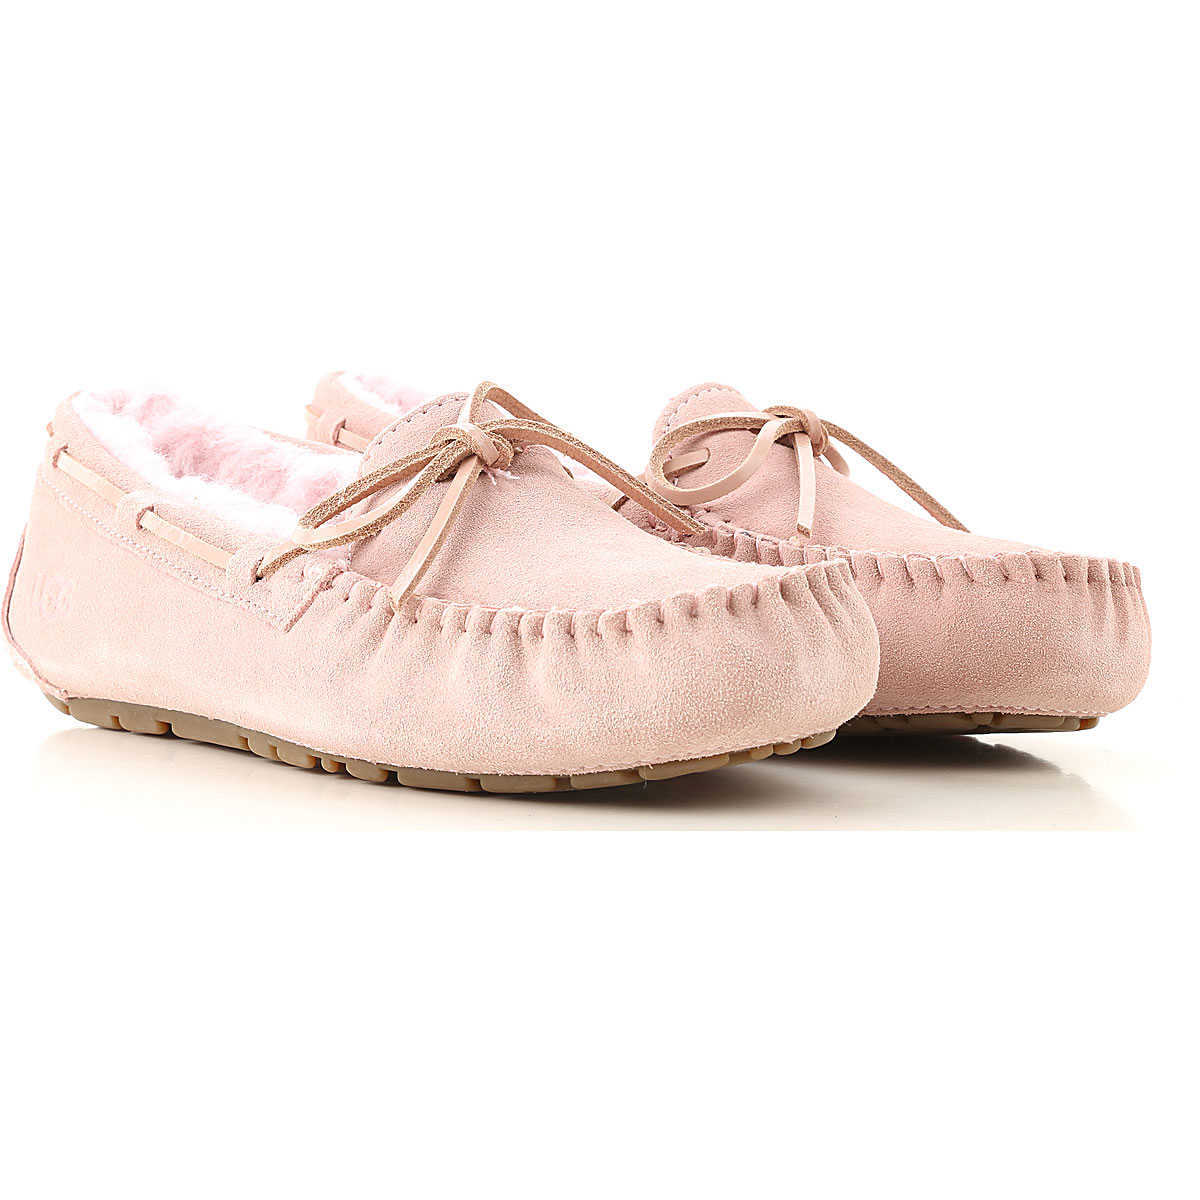 UGG Loafers for Women Rose Canada - GOOFASH - Womens FLAT SHOES